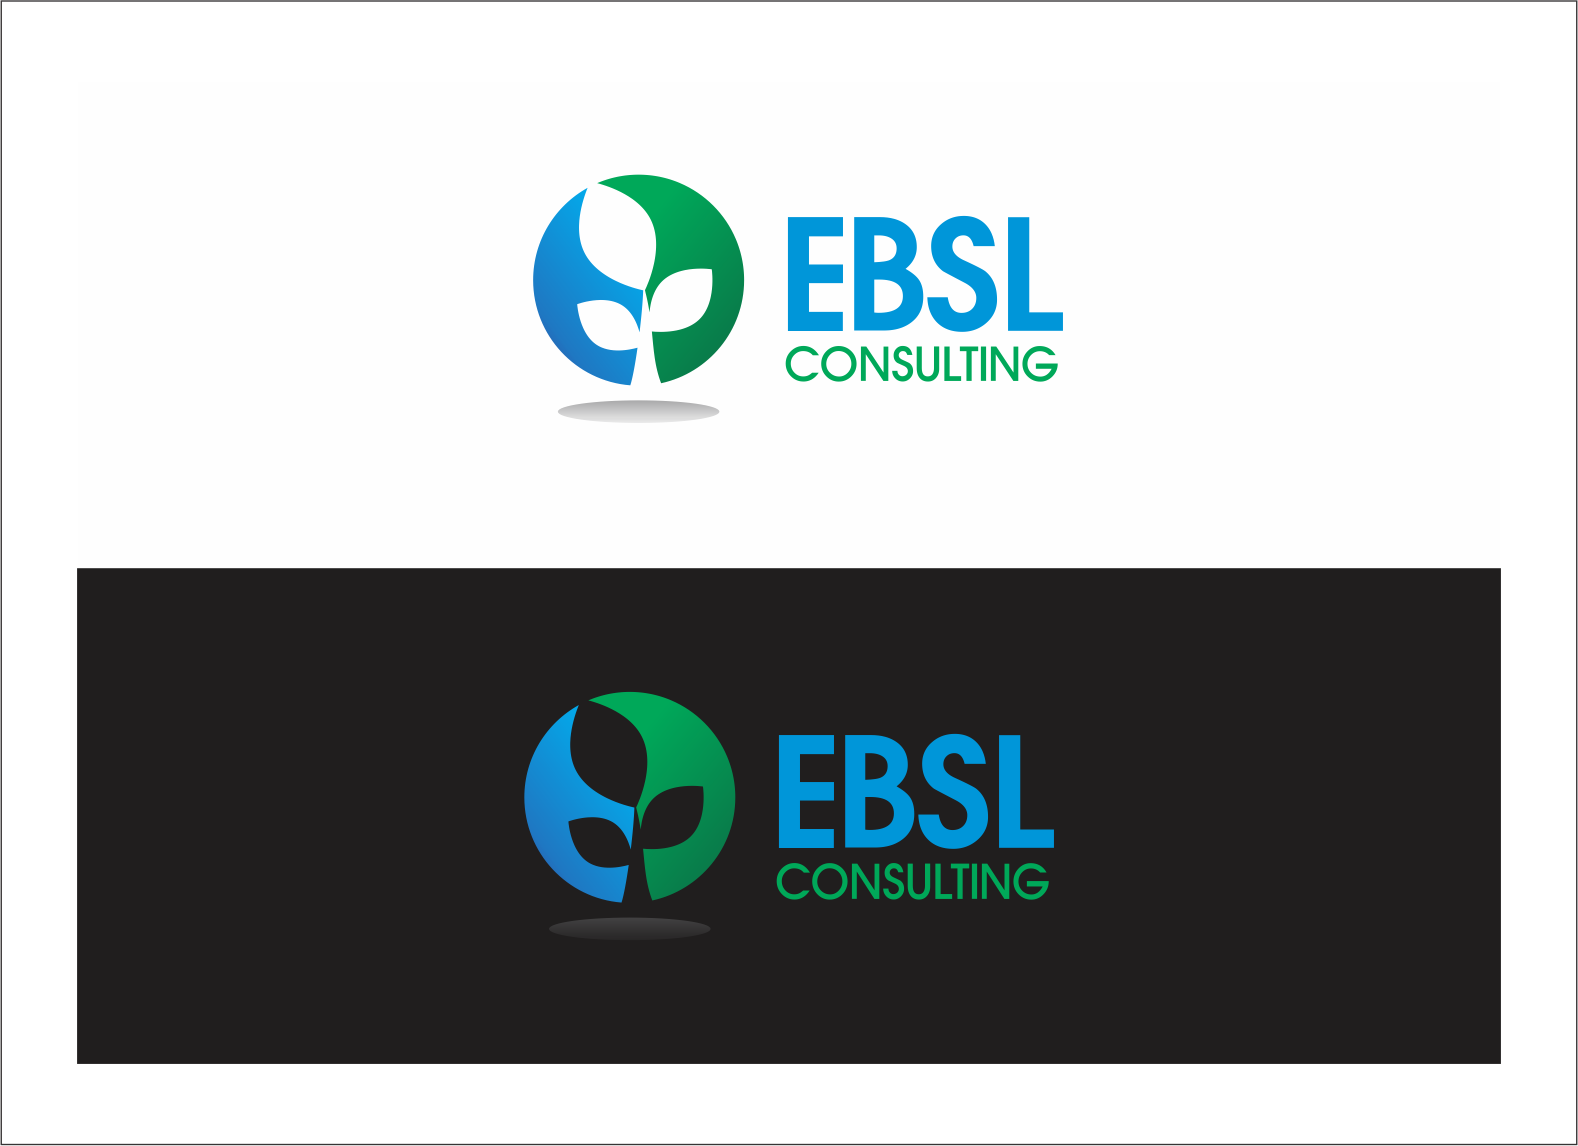 Logo Design by fathdesigner - Entry No. 121 in the Logo Design Contest EBSL Consulting Logo Design.